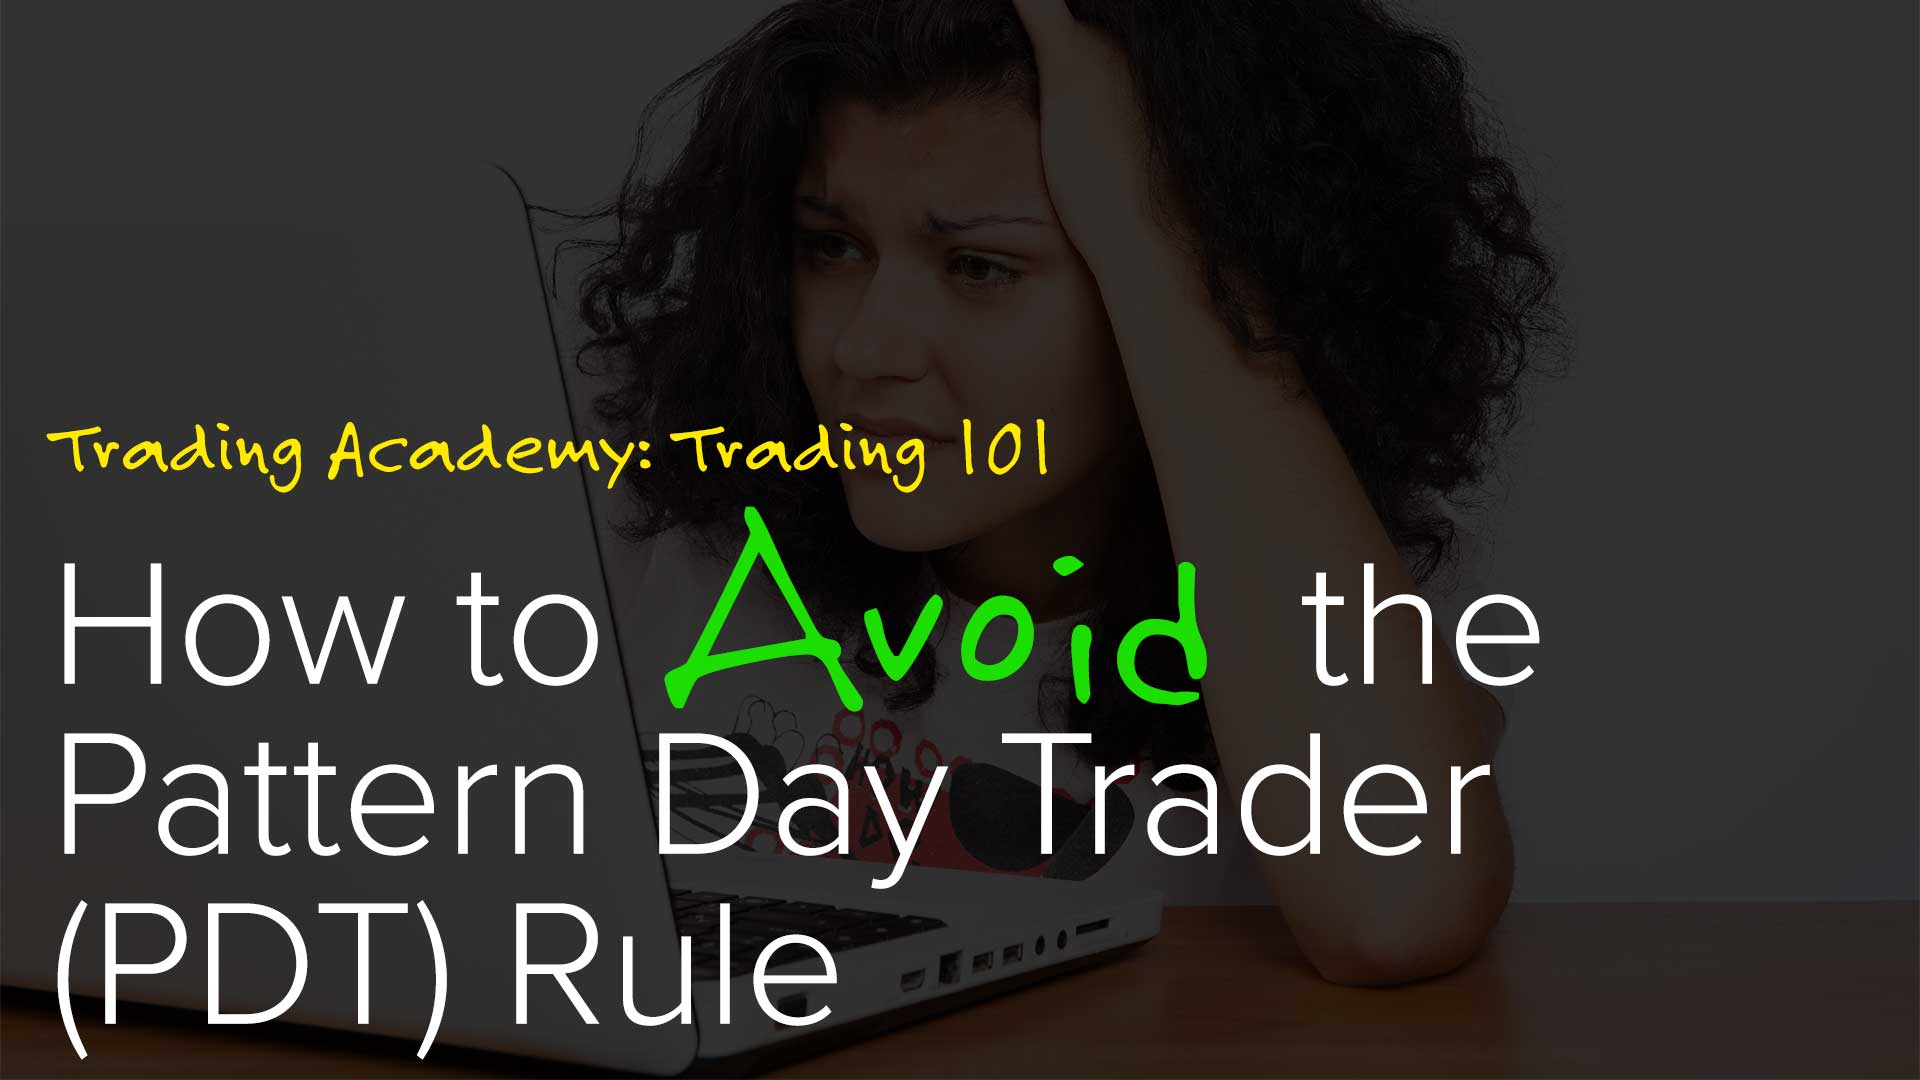 Pattern day trader etrade